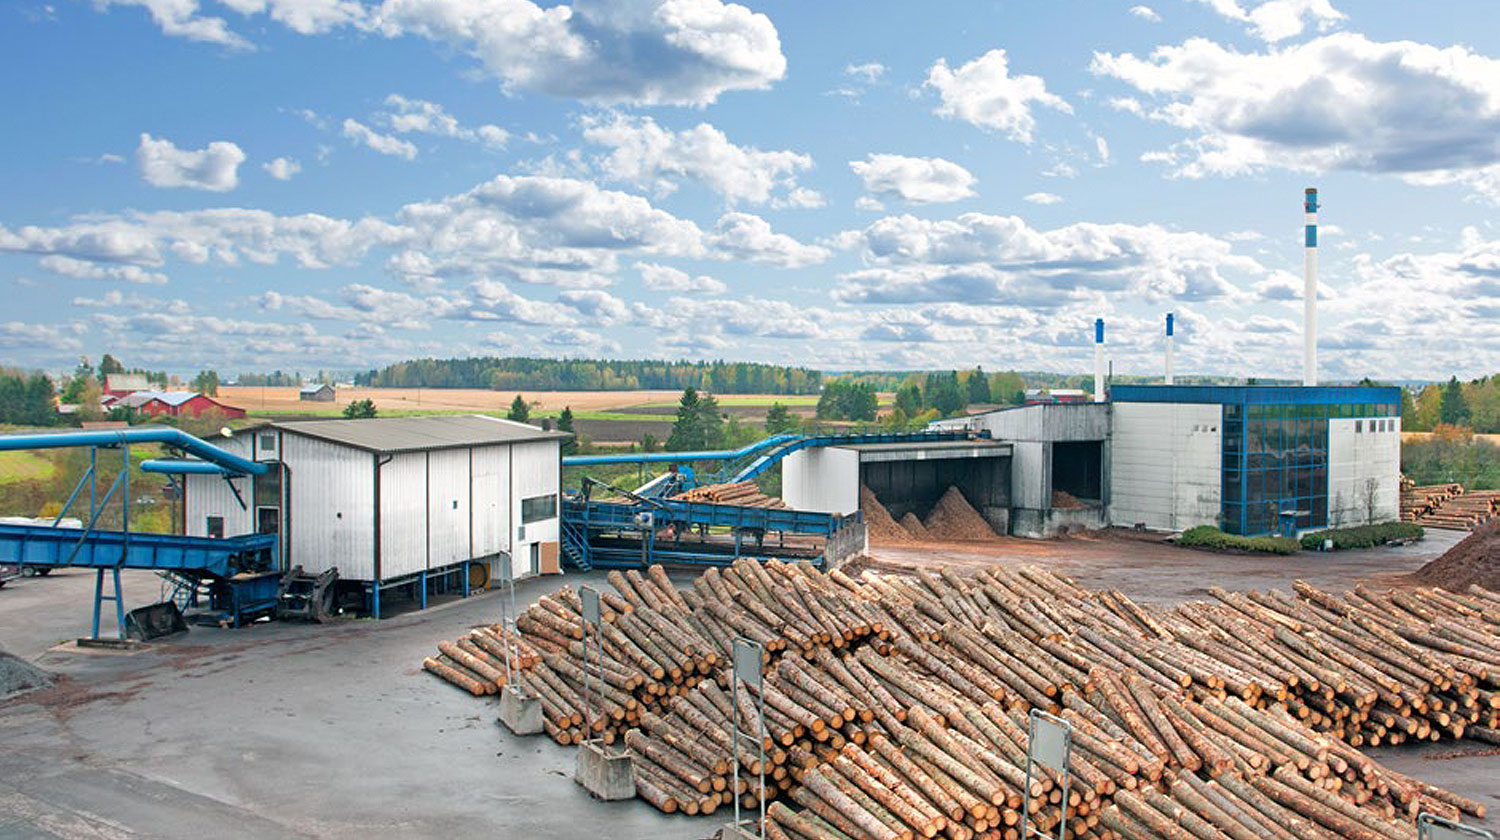 Finnish sawmill uses ABB general purpose drives to increase production efficiency